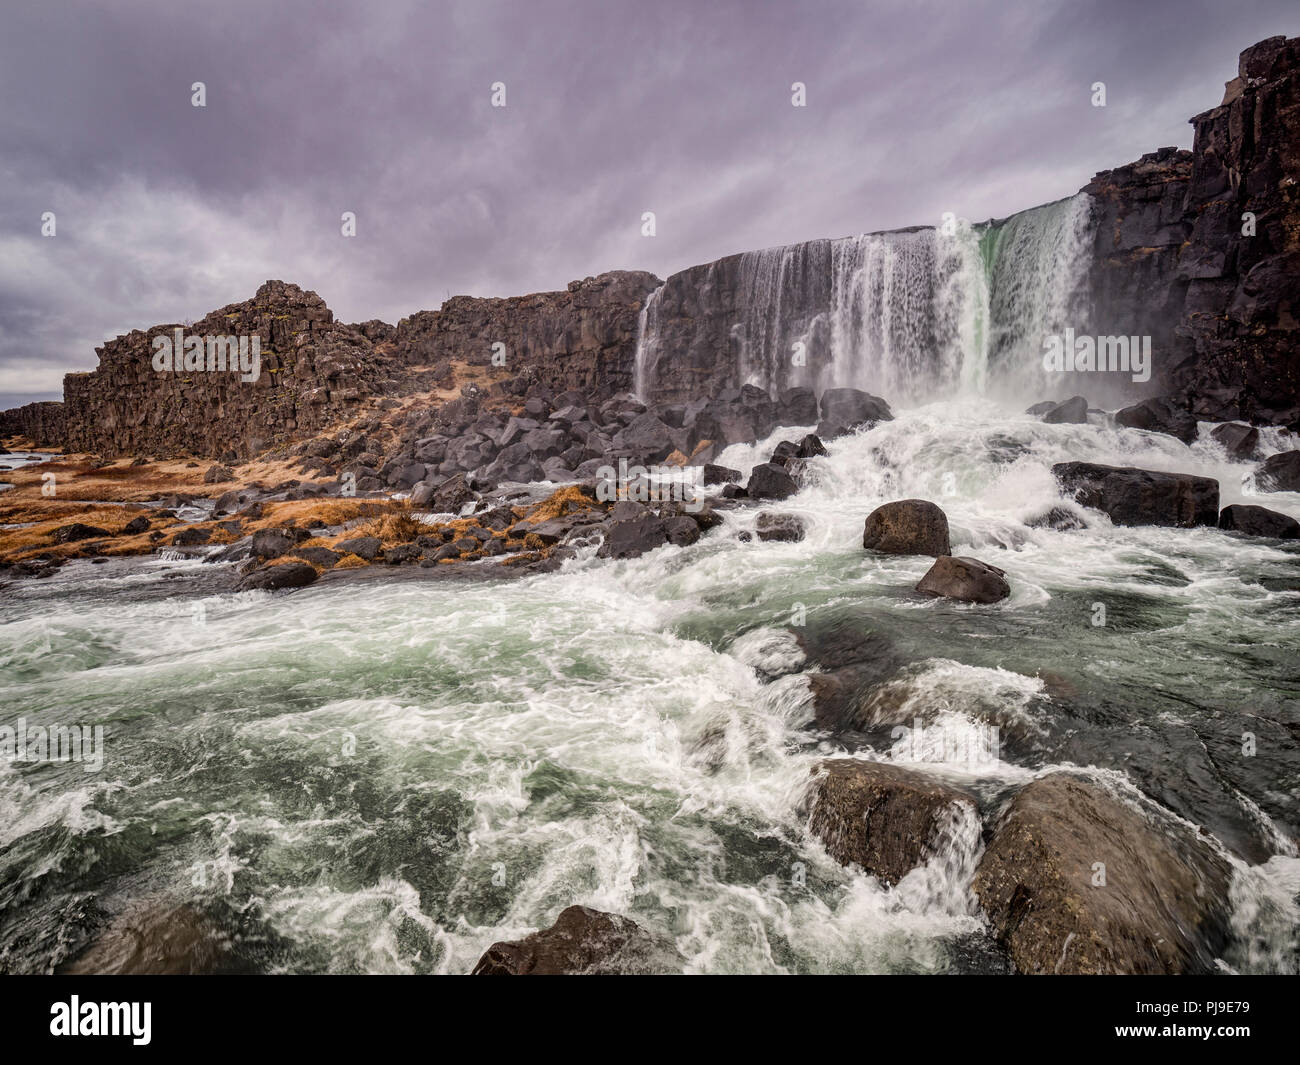 Oxararfoss Waterfall at Thingvellir, Iceland, one of the major attractions on the Golden Circle tourist route. Stock Photo